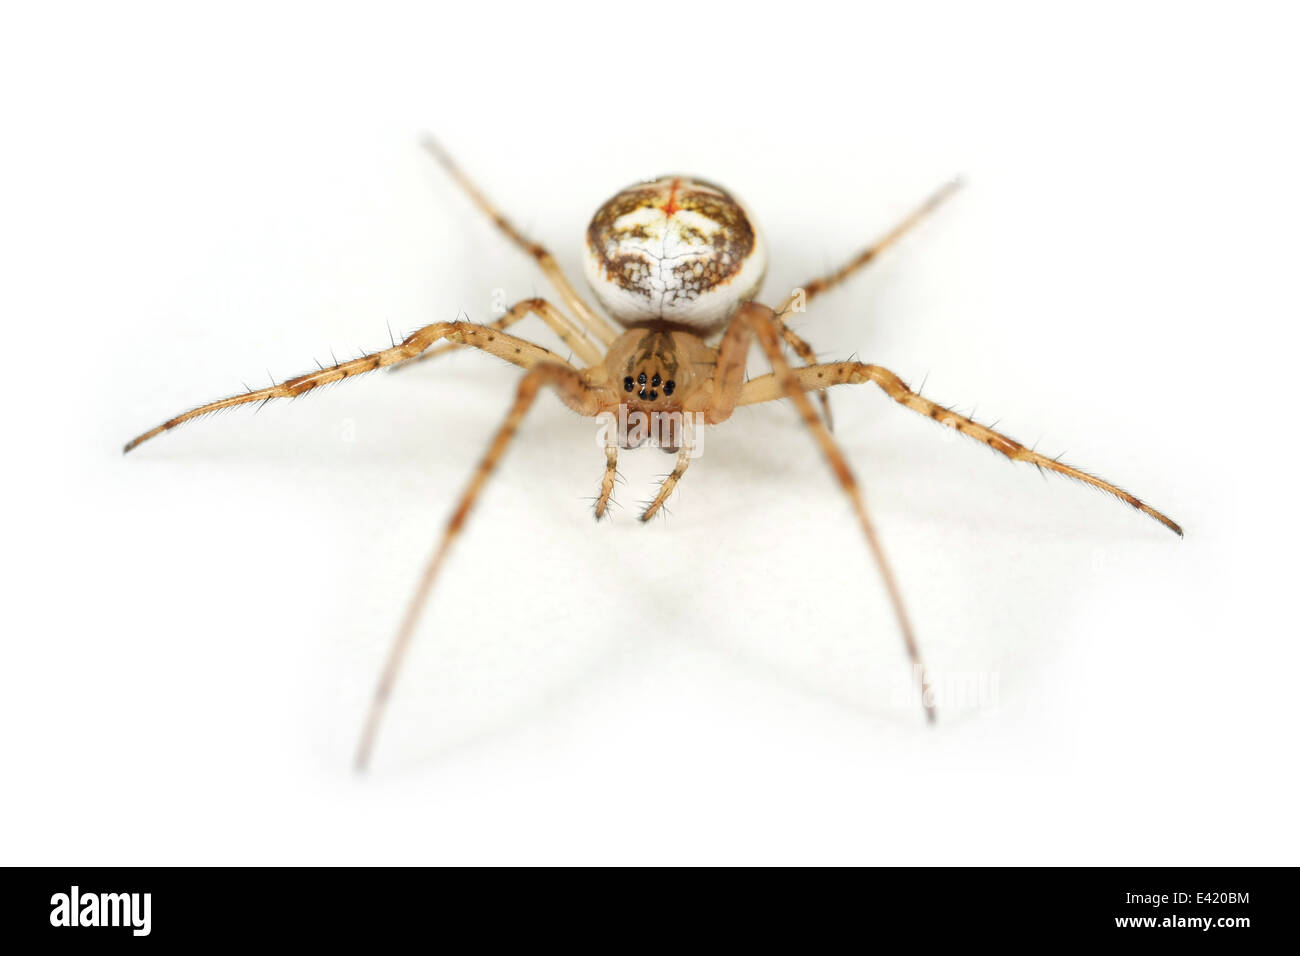 Female Metellina mengei spider, part of the family Tetragnathidae - Longjawed orbweavers or Stretch spiders. Isolated Stock Photo